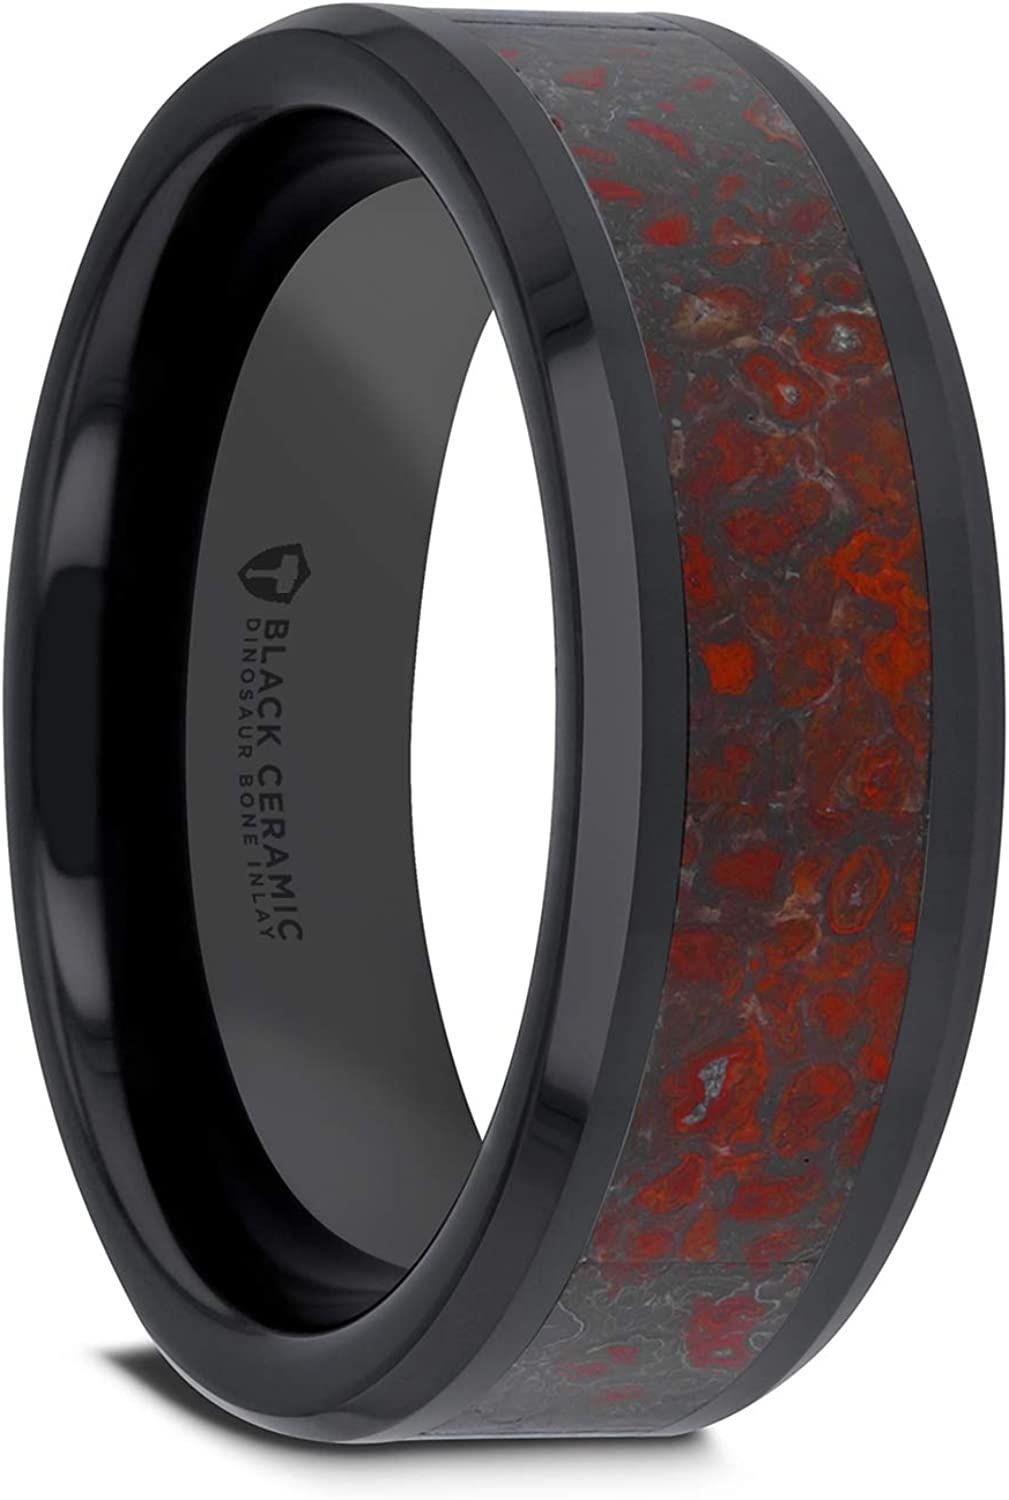 Triassic Black Ceramic Wedding Ring Flat Style with Red Dinosaur Bone Inlay & Polished Beveled Edges - 4mm